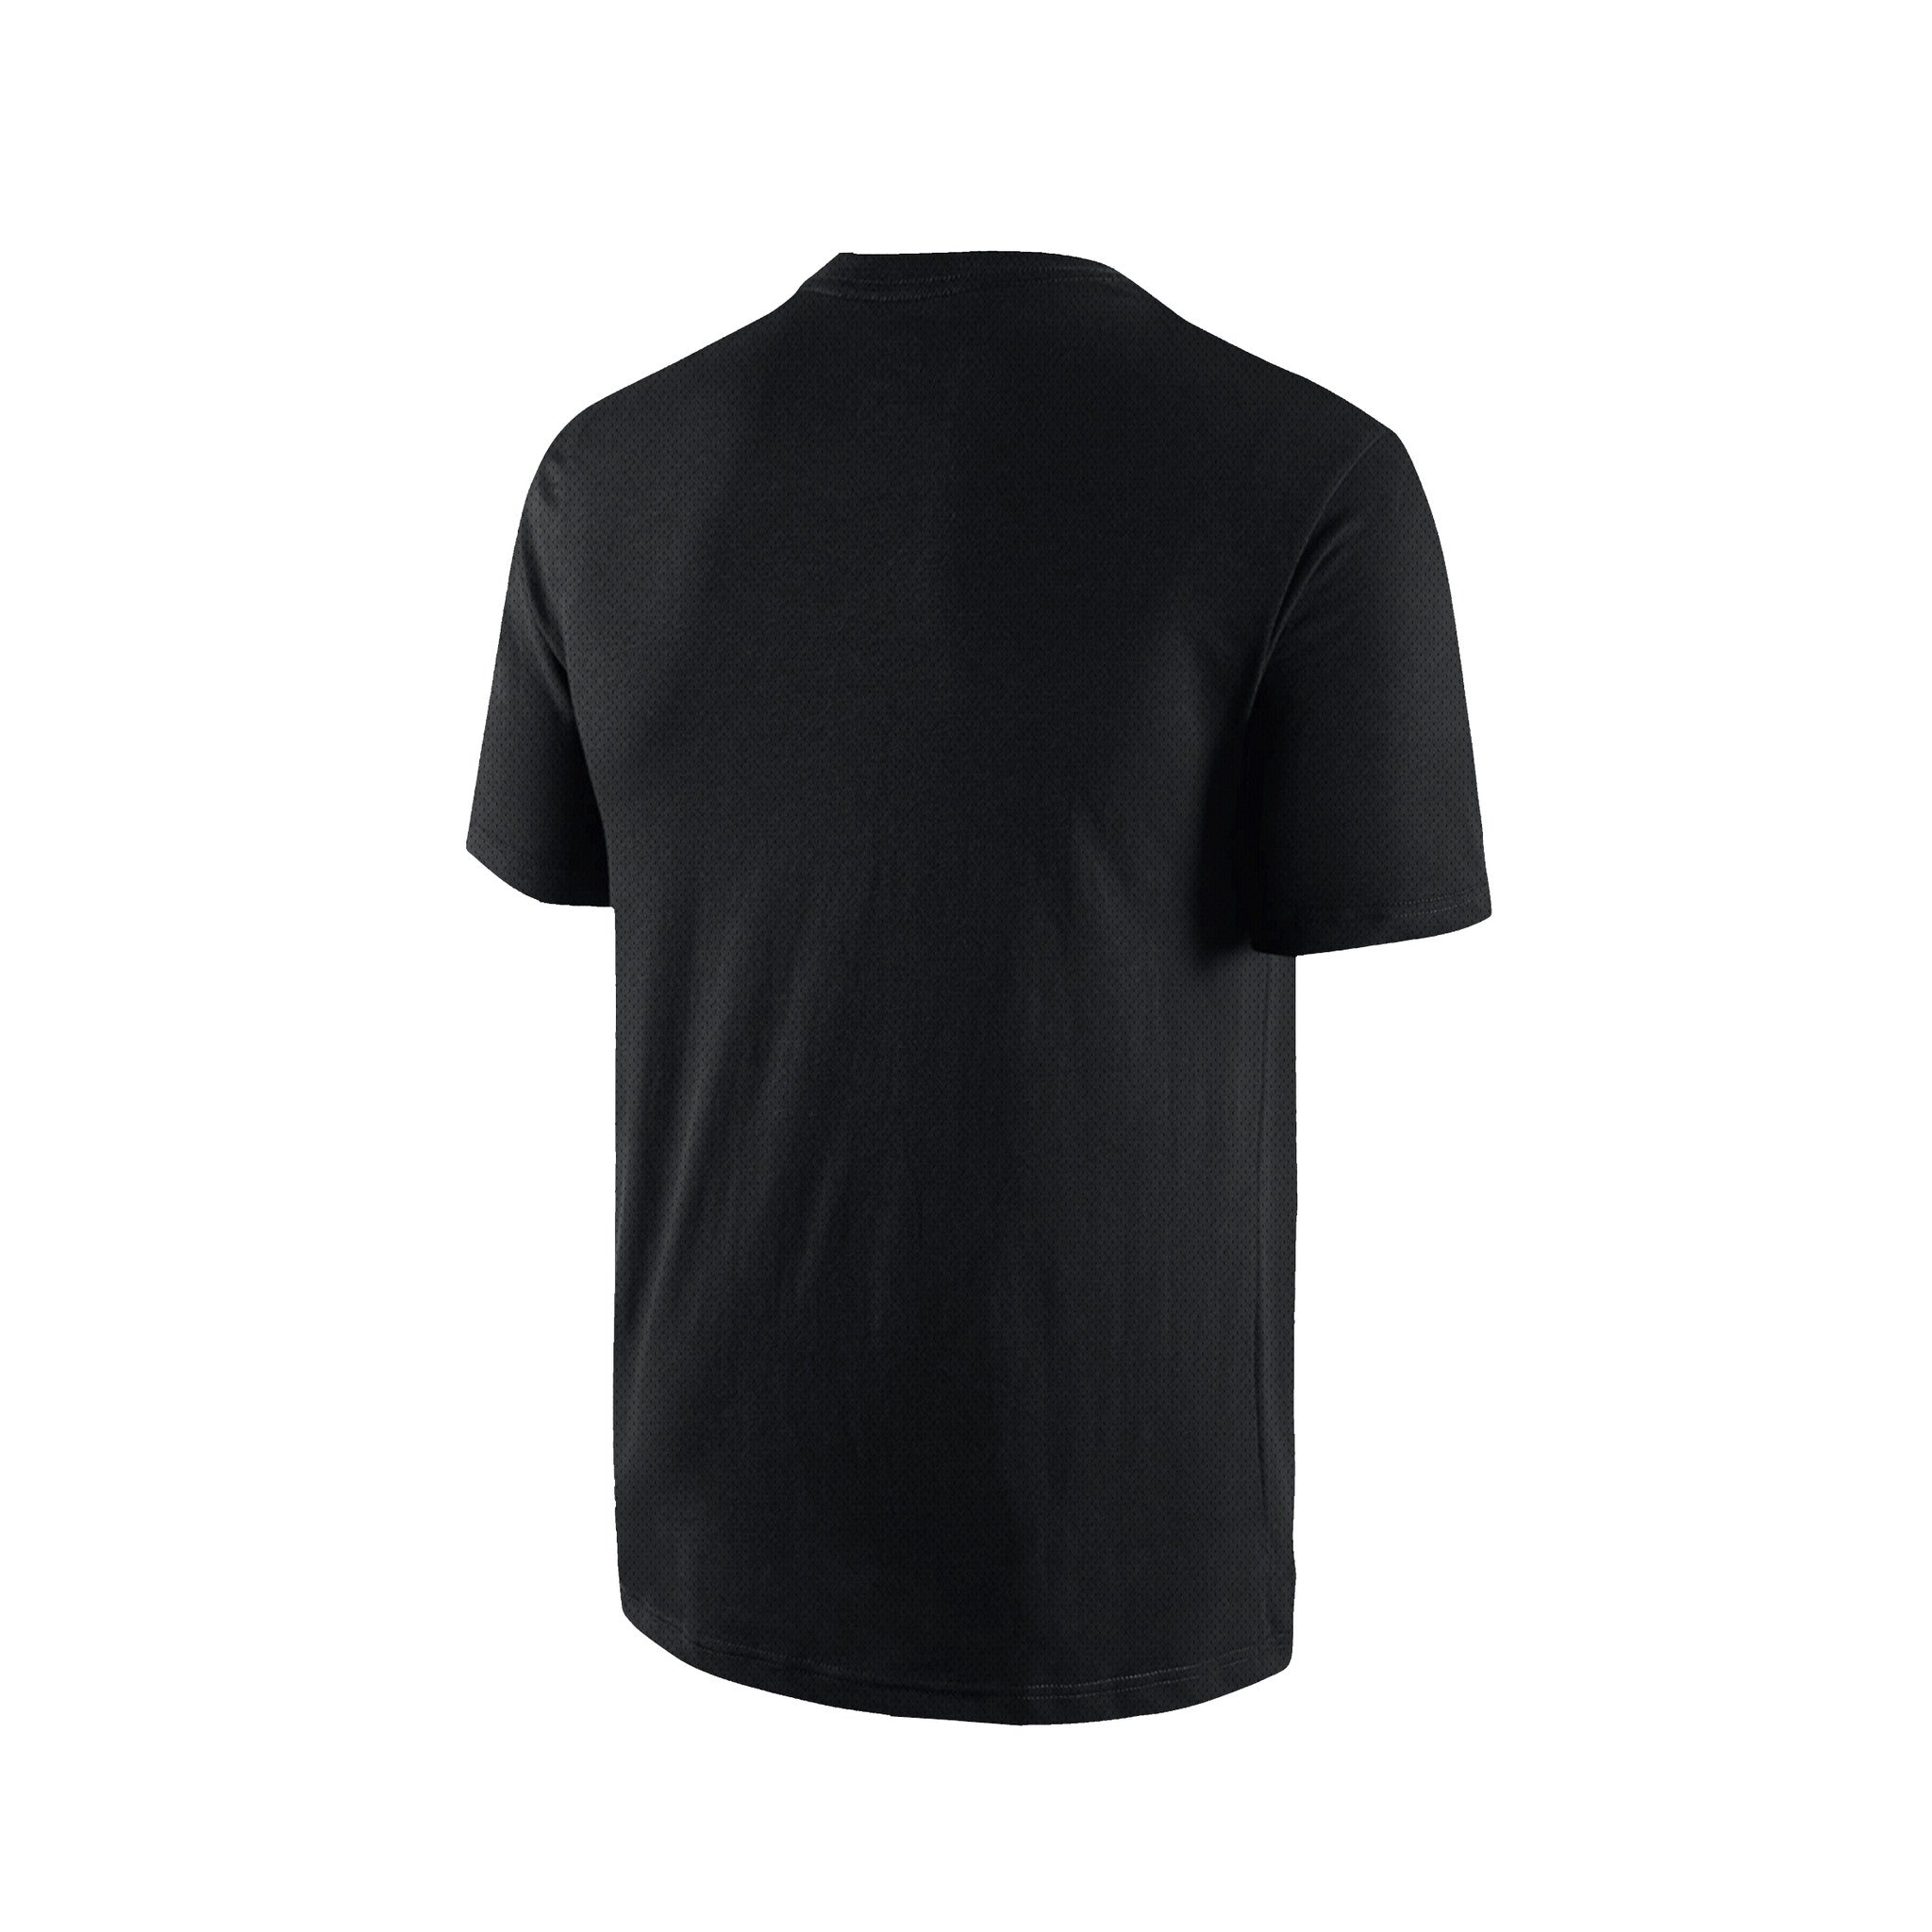 SportyFish Black Series t-shirt: Atlantic Sailfish back view